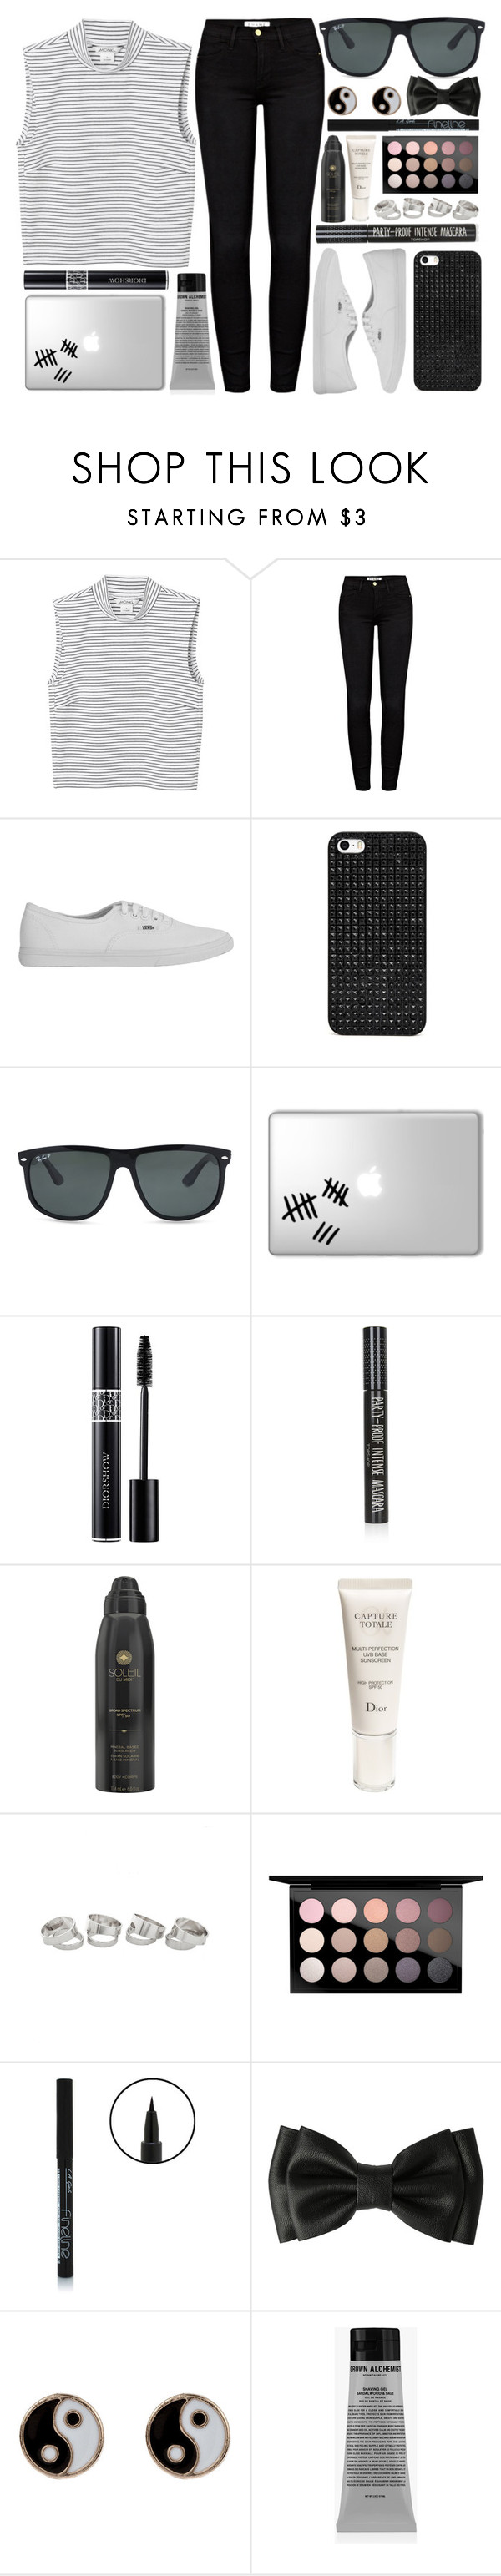 """3000+ LIKES?!?!?"" by onedeetwins ❤ liked on Polyvore featuring Monki, Frame Denim, Vans, BaubleBar, Ray-Ban, Topshop, Soleil Toujours, Christian Dior, MAC Cosmetics and Accessorize"